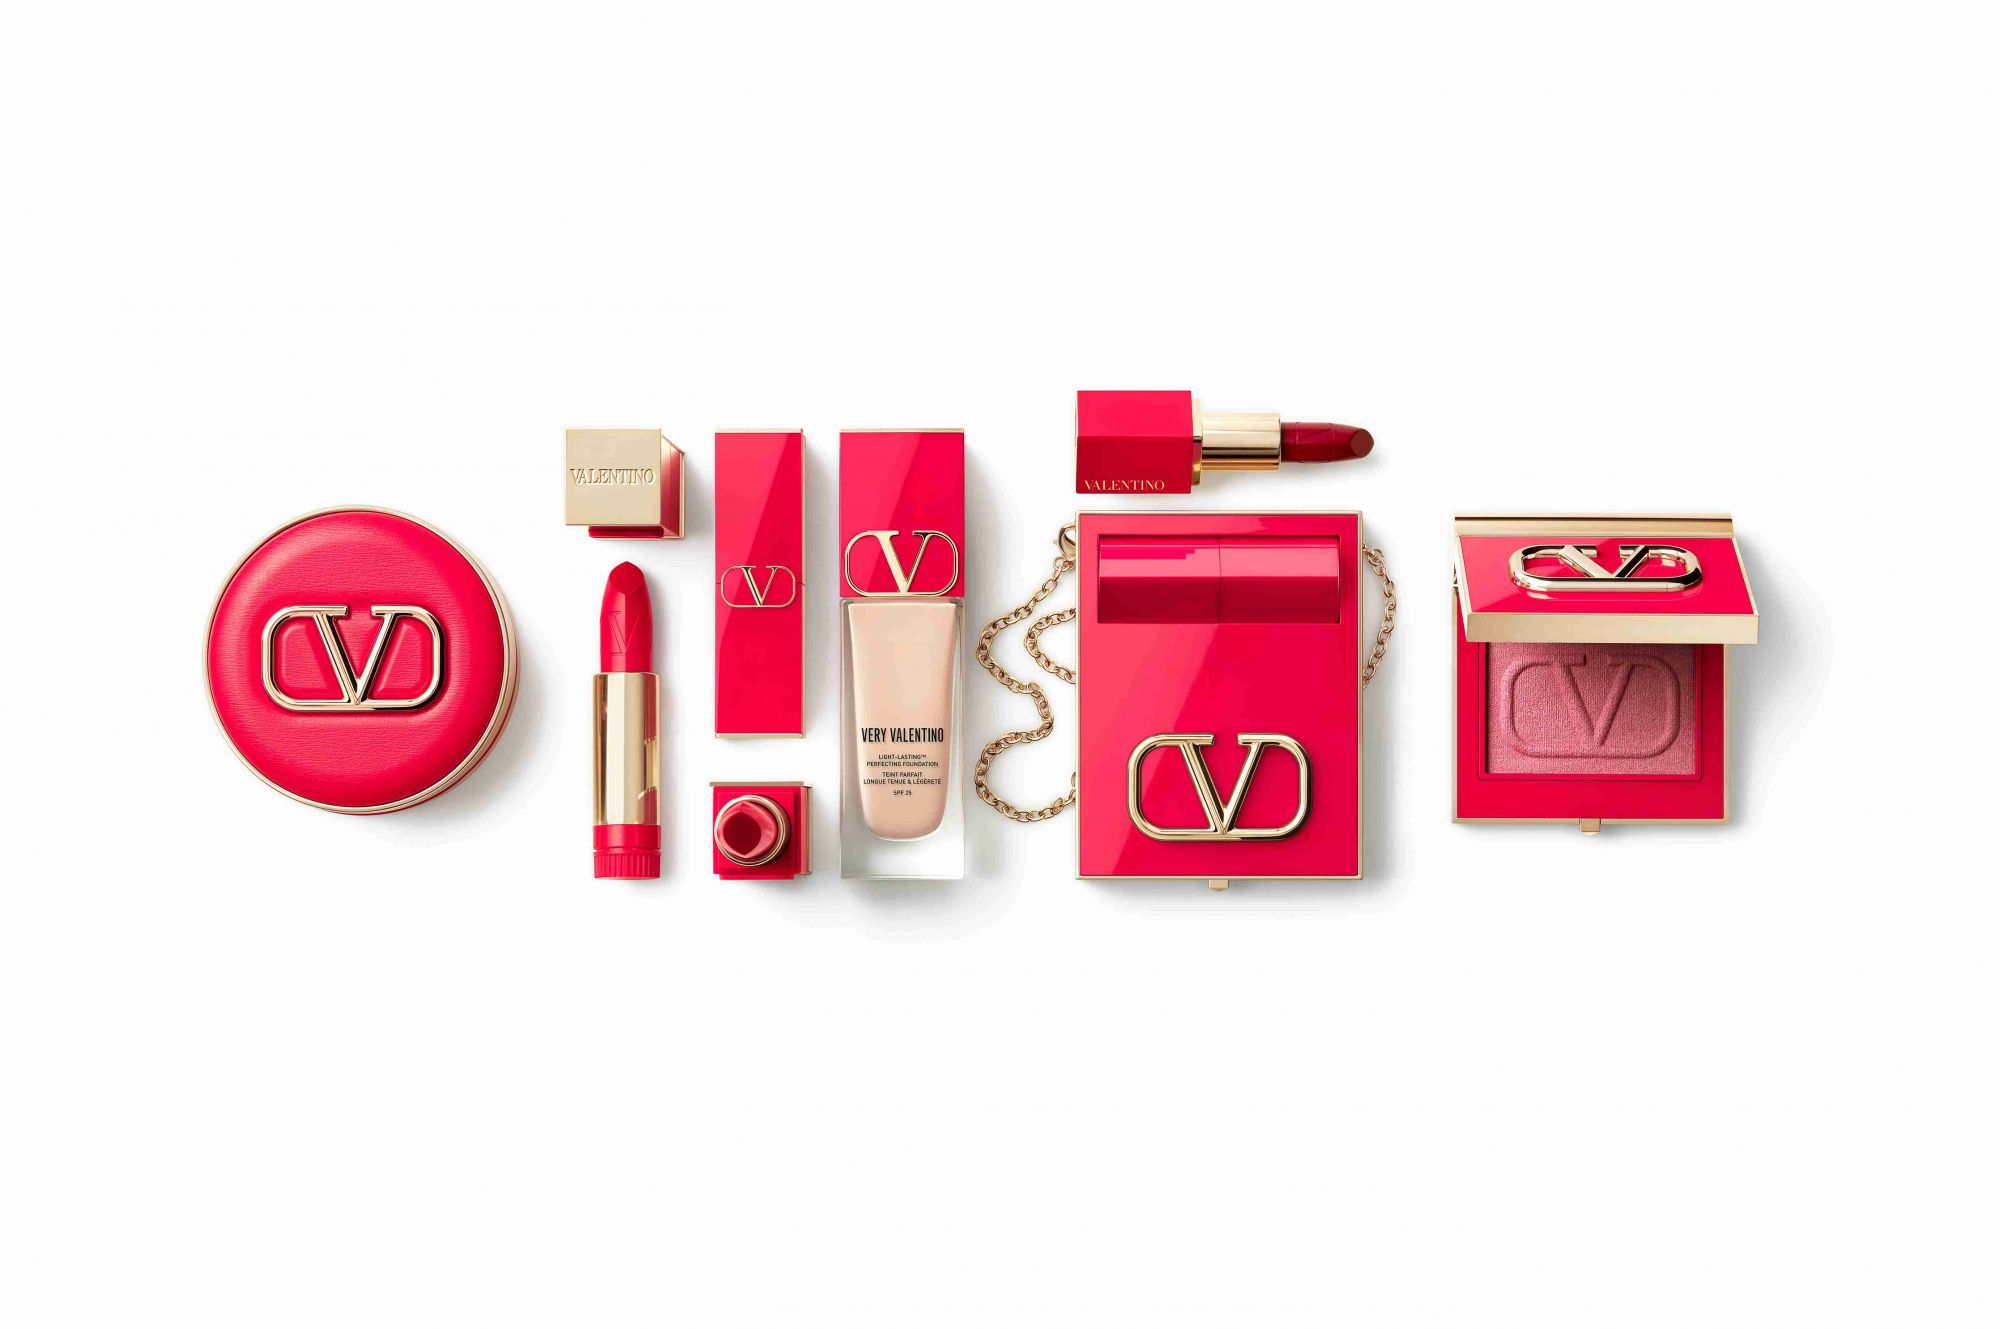 A Valentino make-up line is coming this August 2021